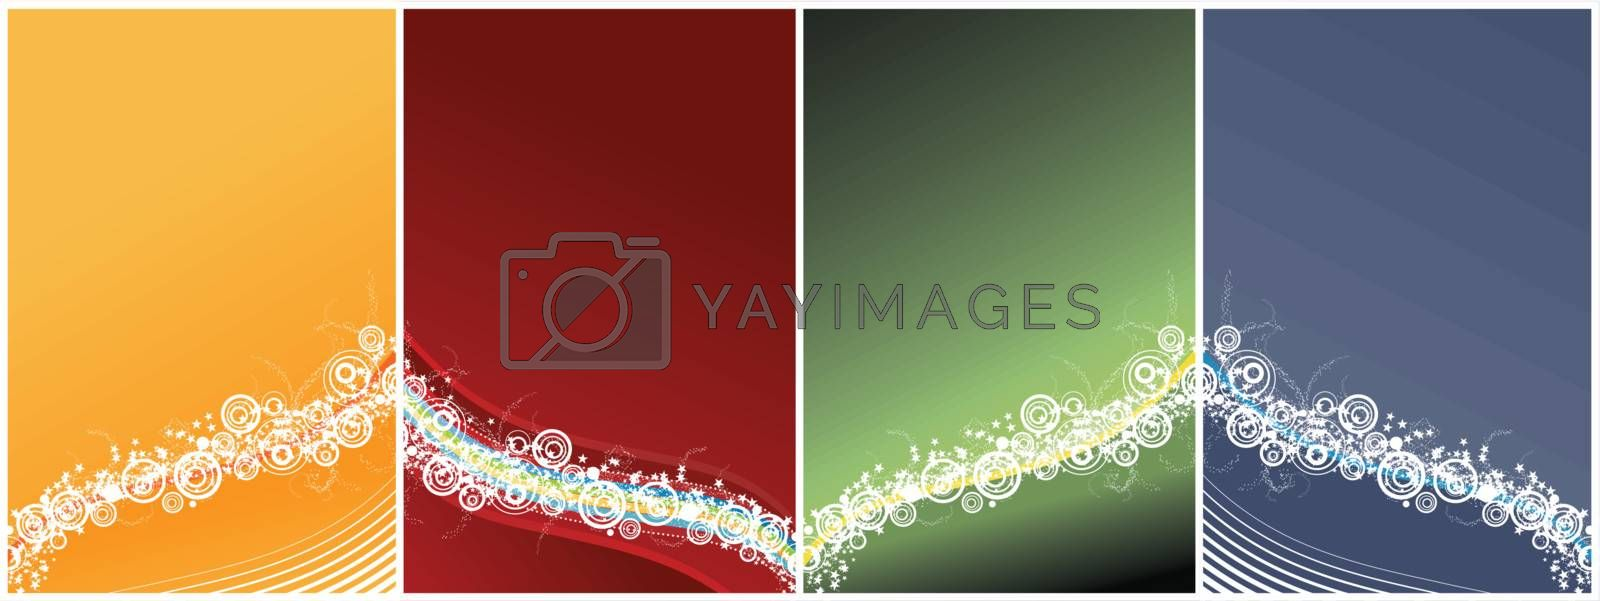 Vector illustration of a celebrative backgrounds with waved lined art, modern circles and a myriad of stars. Four different versions. Easily editable.